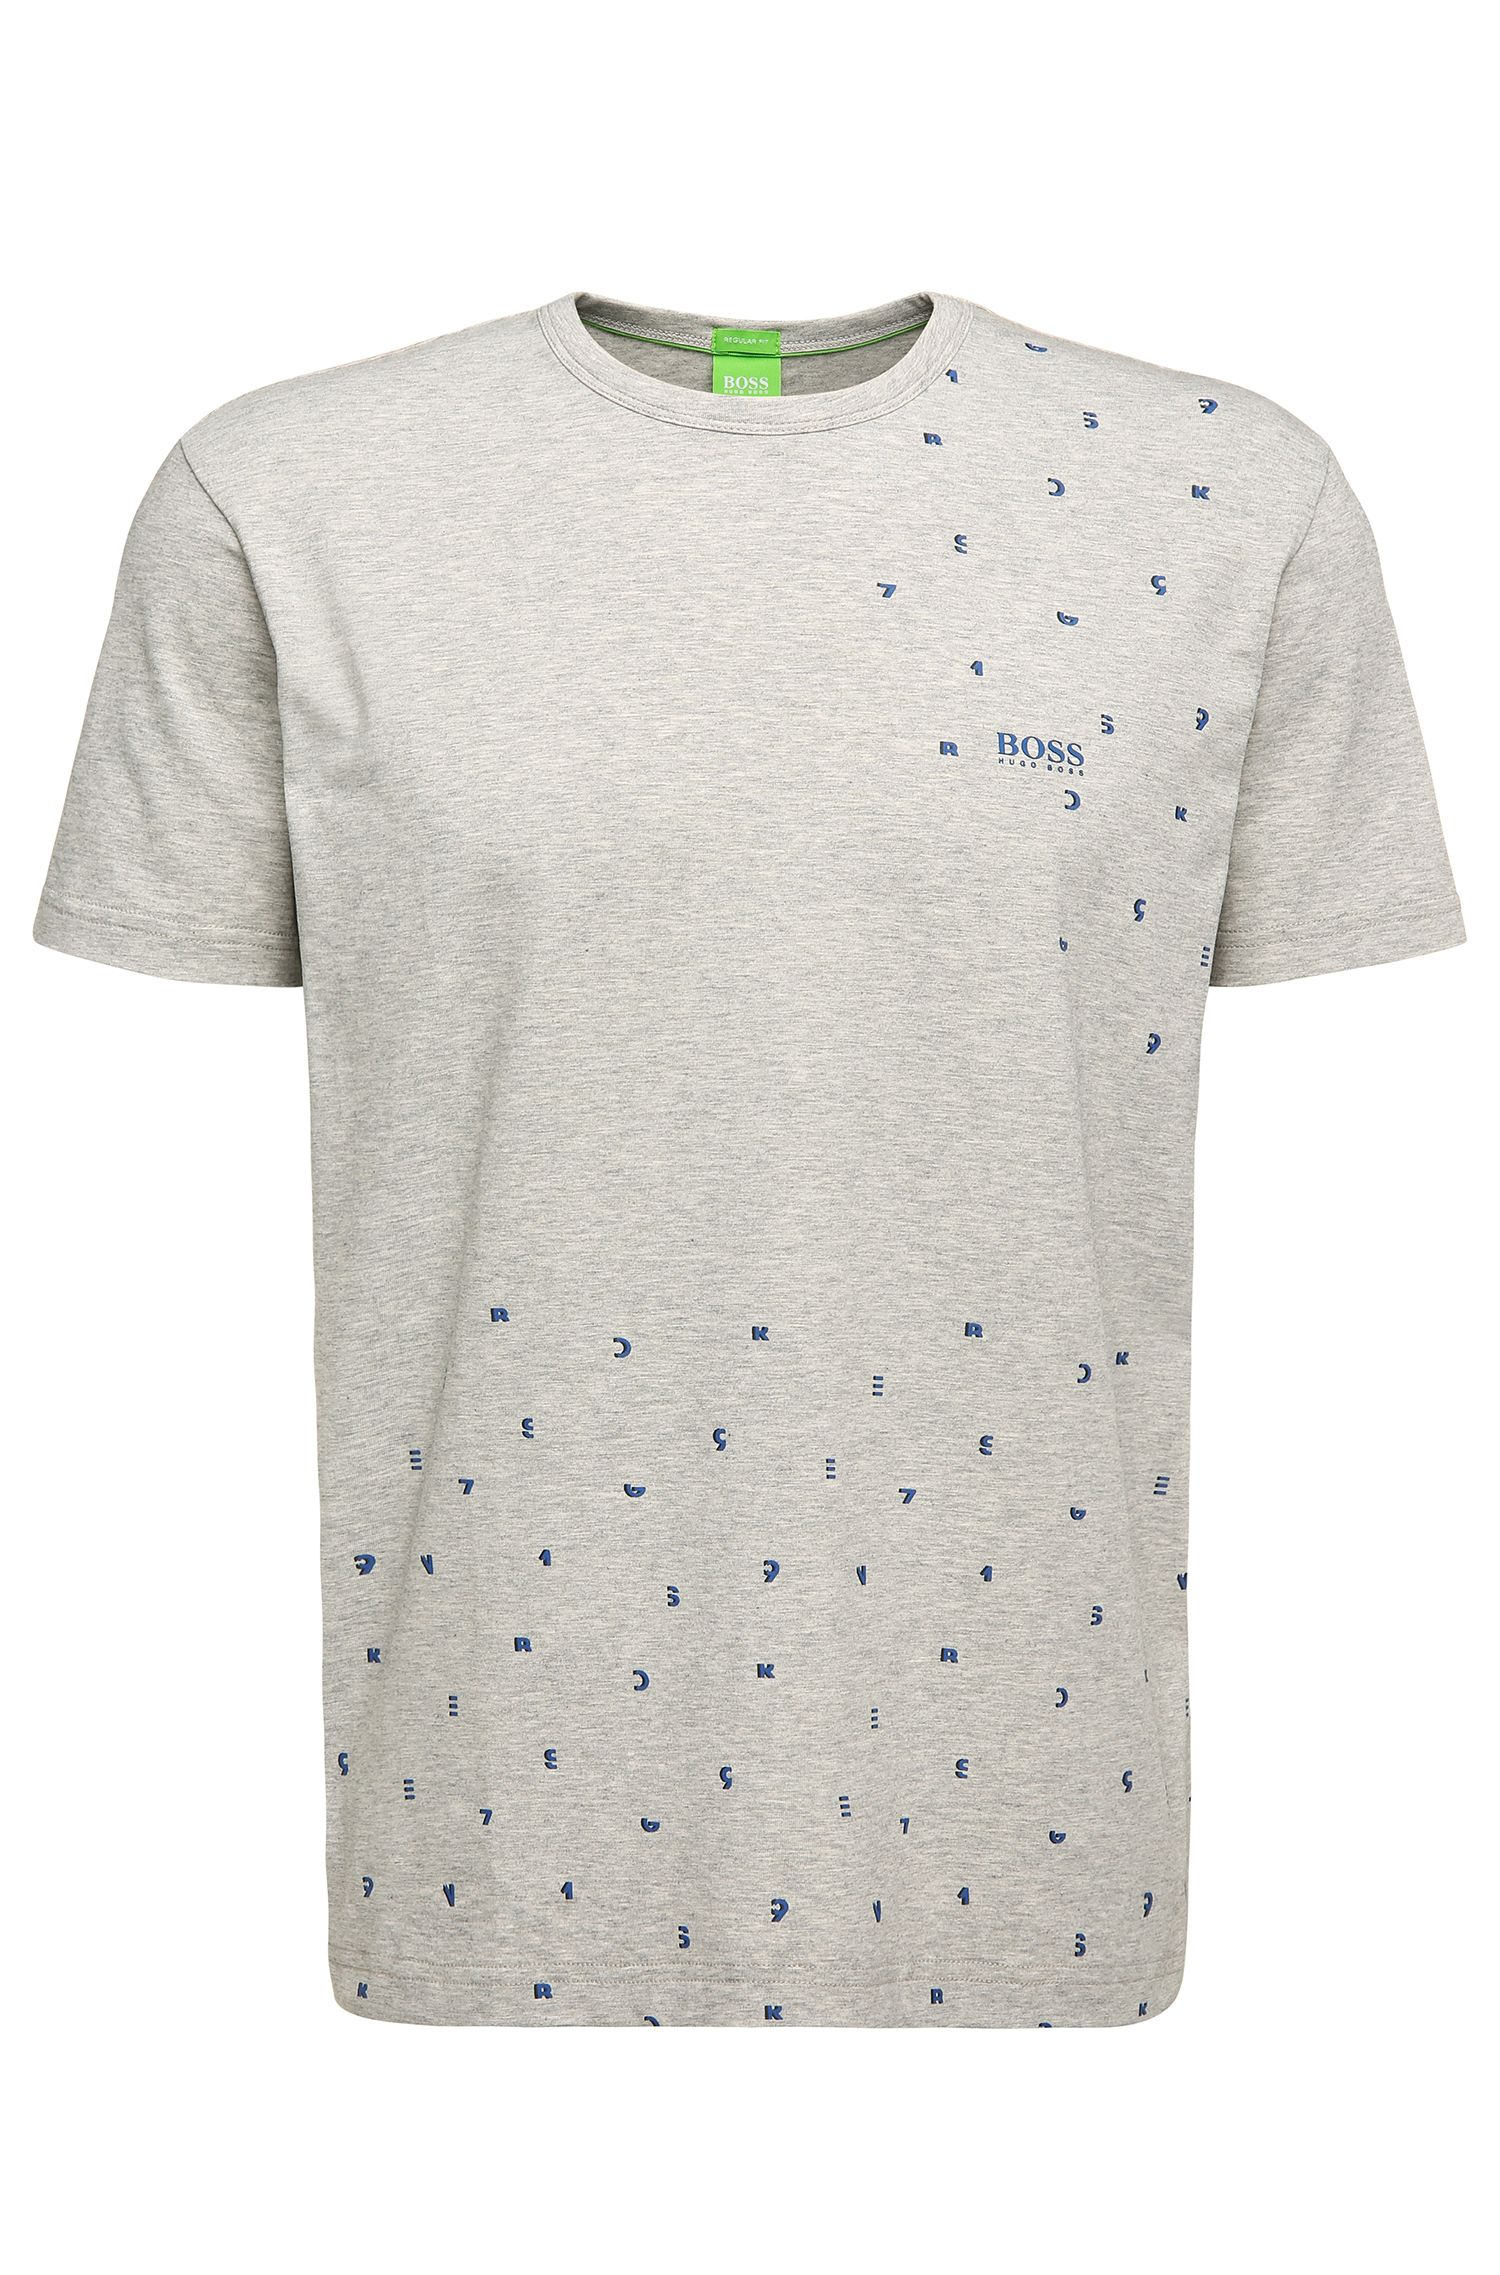 Regular-Fit T-Shirt aus Stretch-Baumwolle mit Print: ´Tee 7`